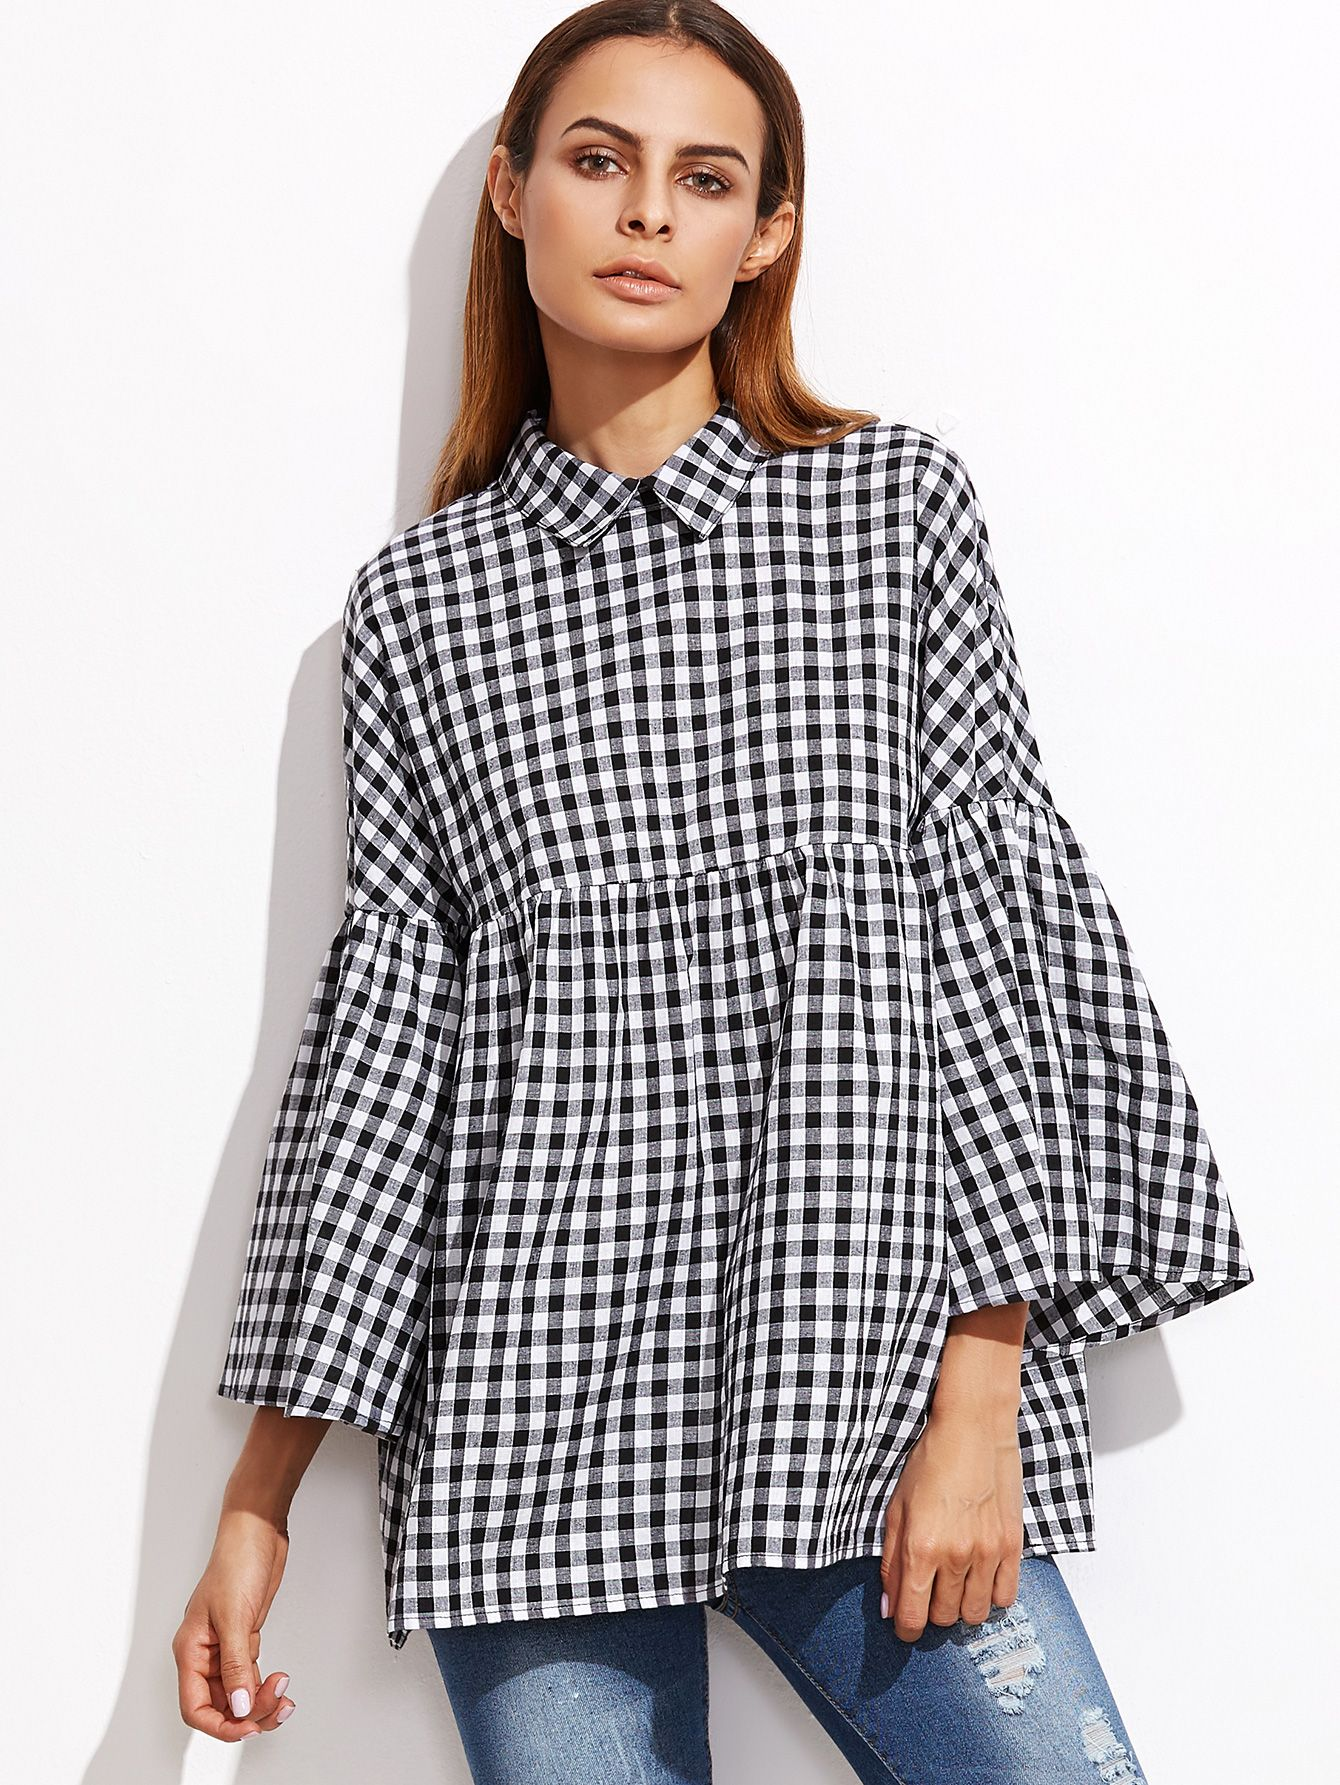 b7c944d08fd Shop Black Gingham Bell Sleeve Babydoll Blouse online. SheIn offers Black  Gingham Bell Sleeve Babydoll Blouse & more to fit your fashionable needs.